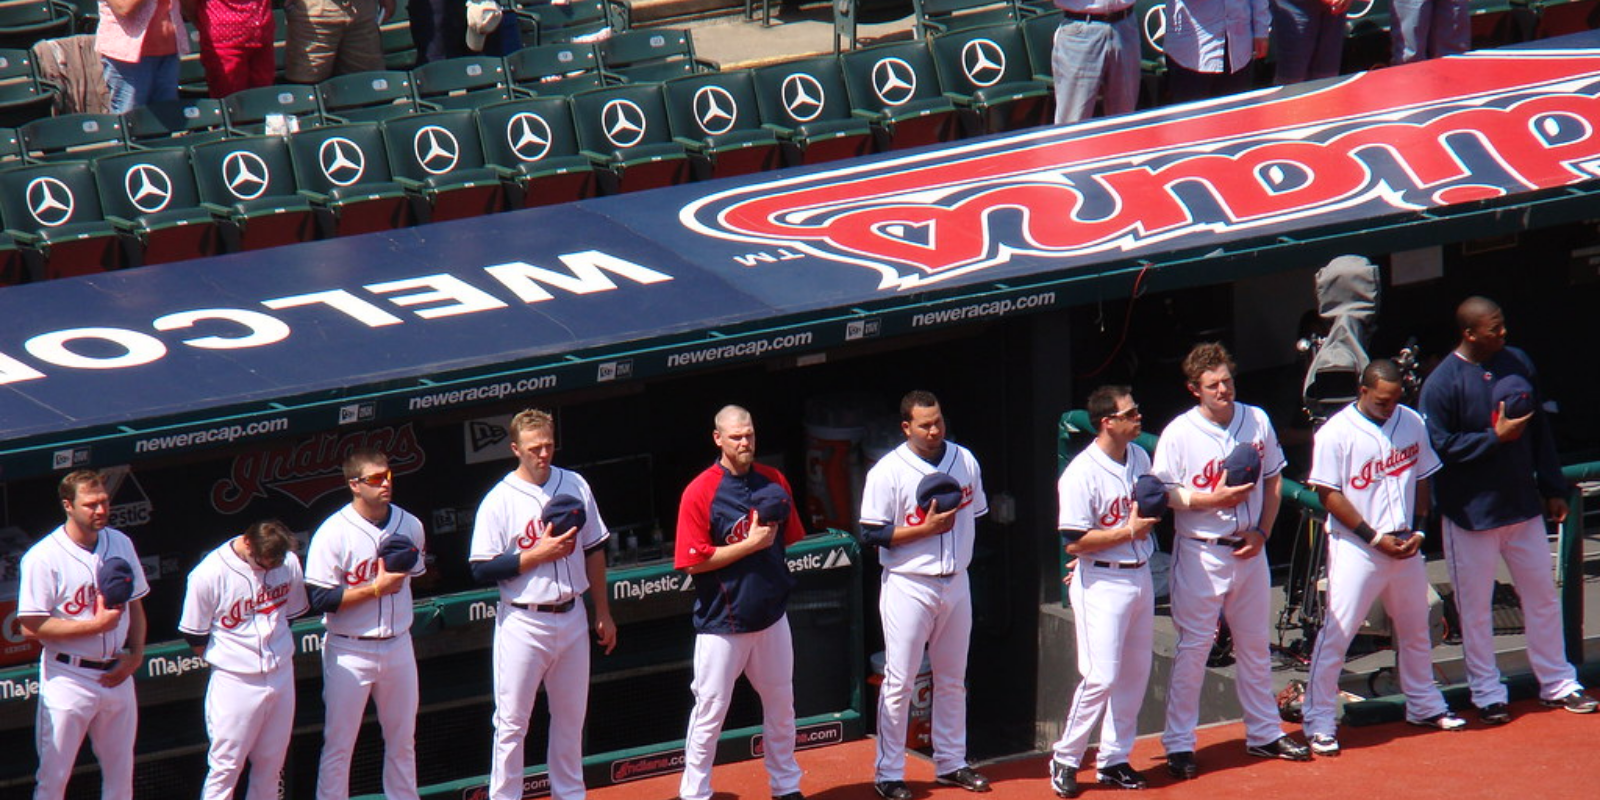 After more than a century, the Cleveland Indians are now the Guardians